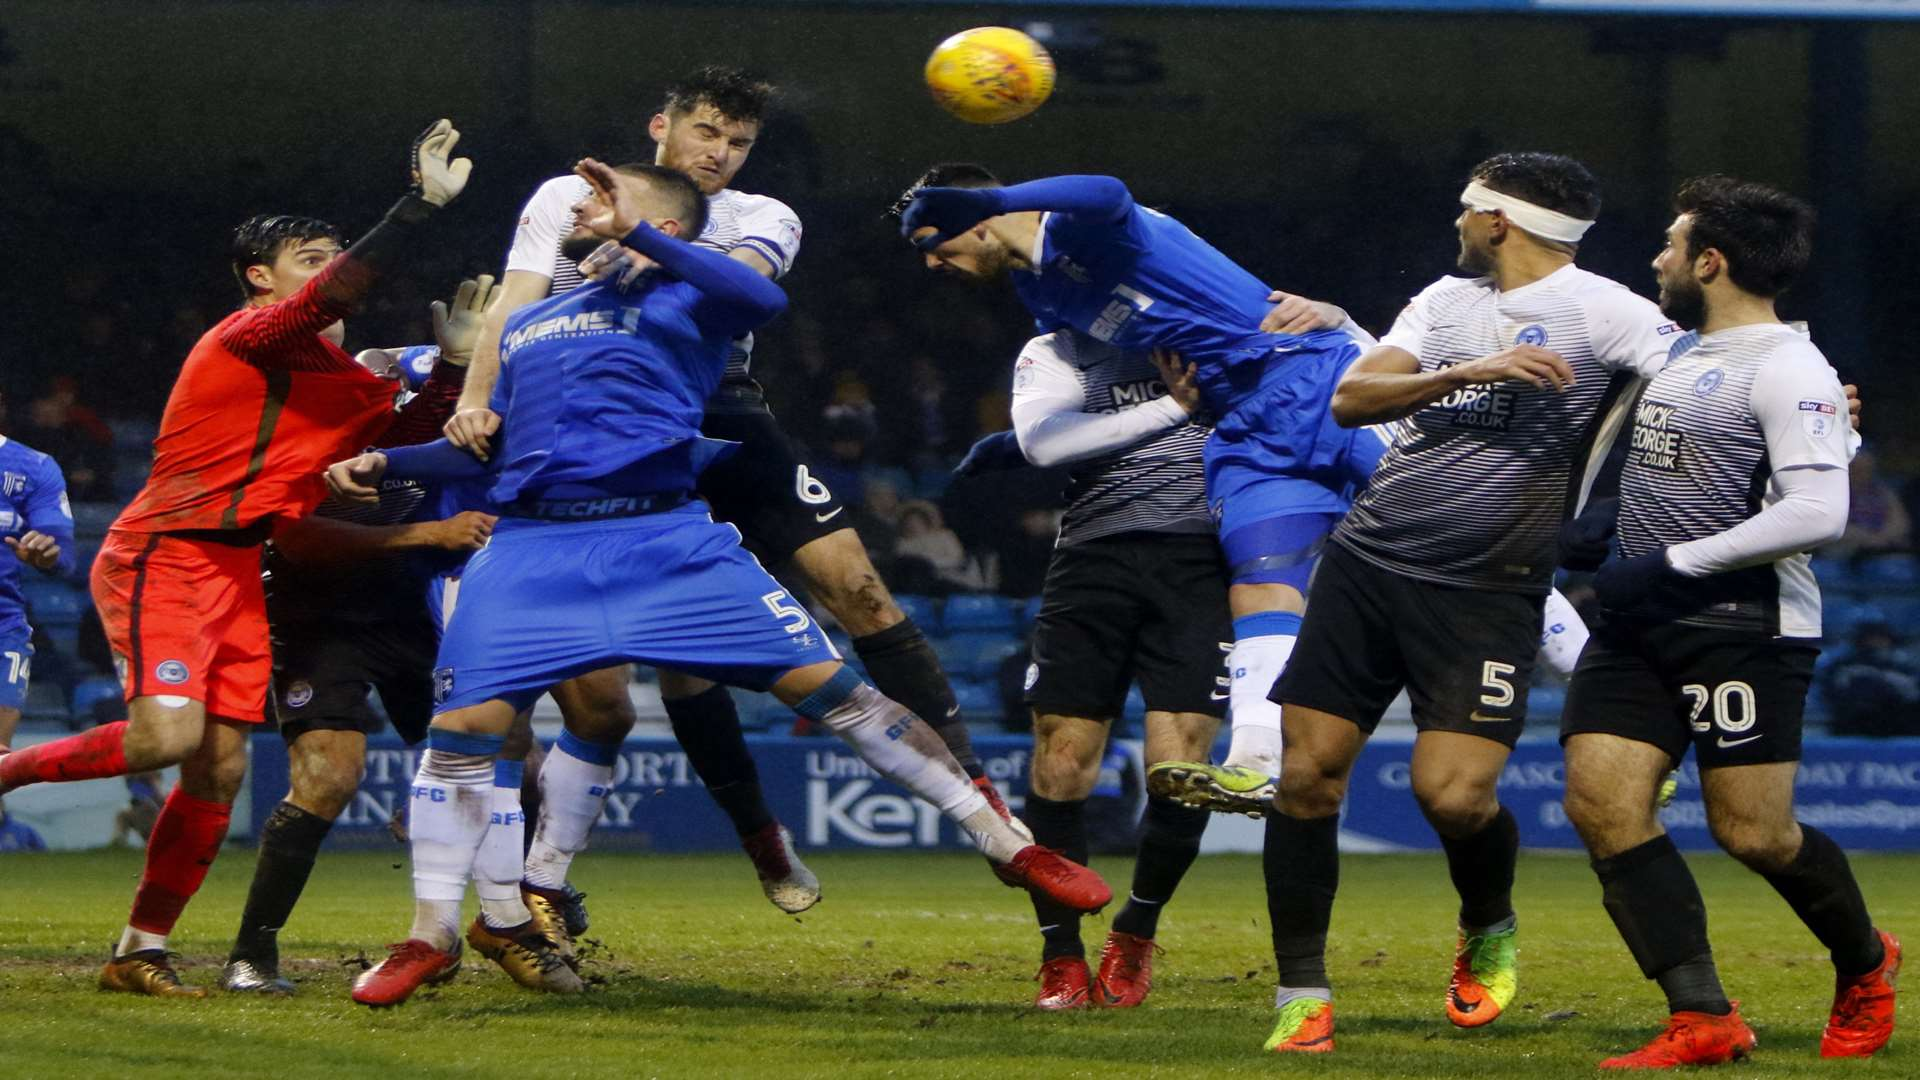 Gillingham pile on the pressure in the second half. Picture: Andy Jones